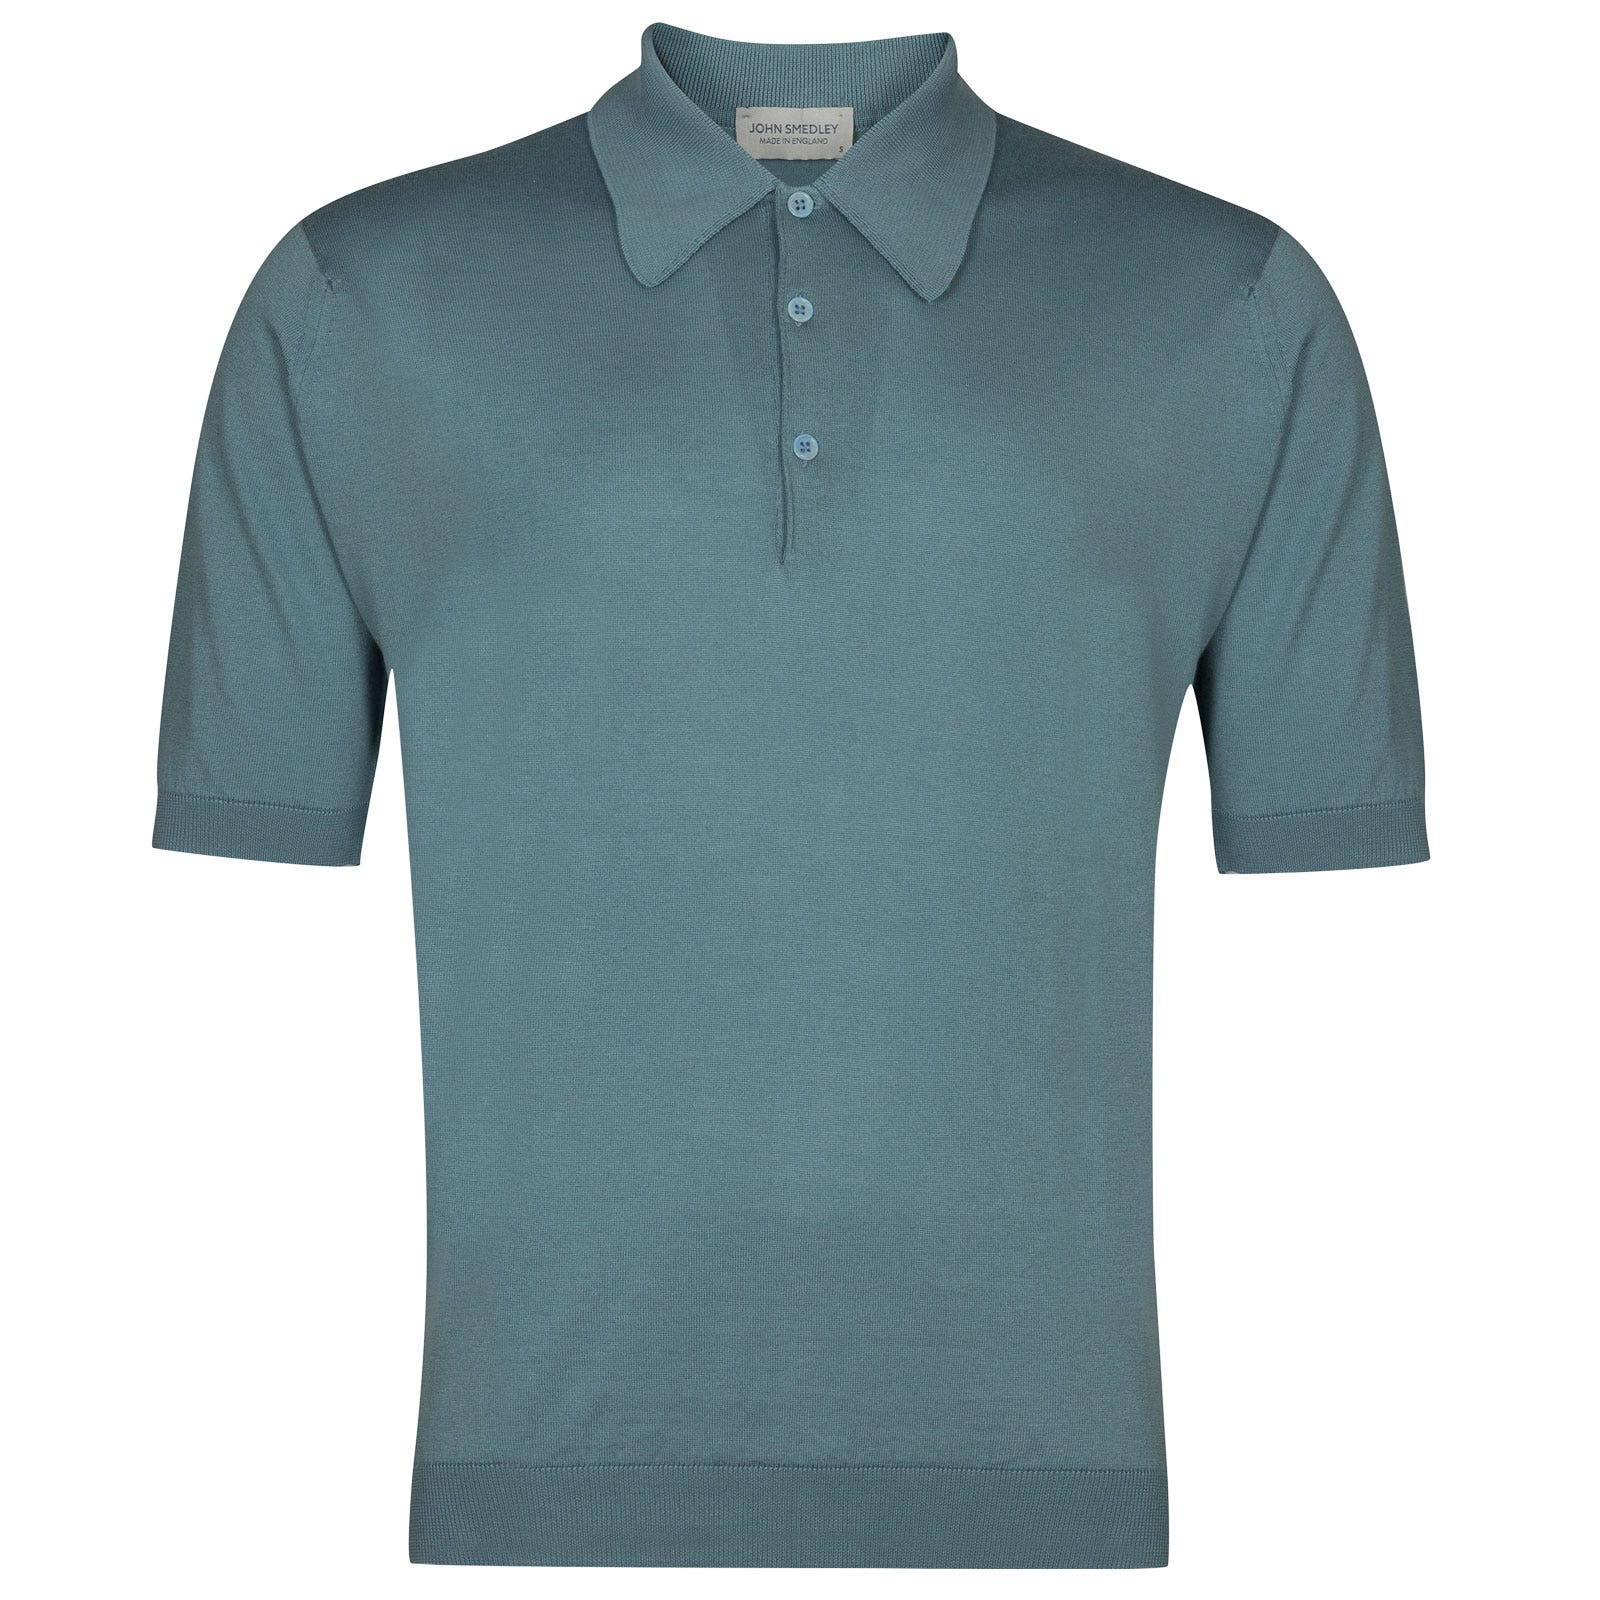 John Smedley Isis Sea Island Cotton Shirt in Summit Blue-XS